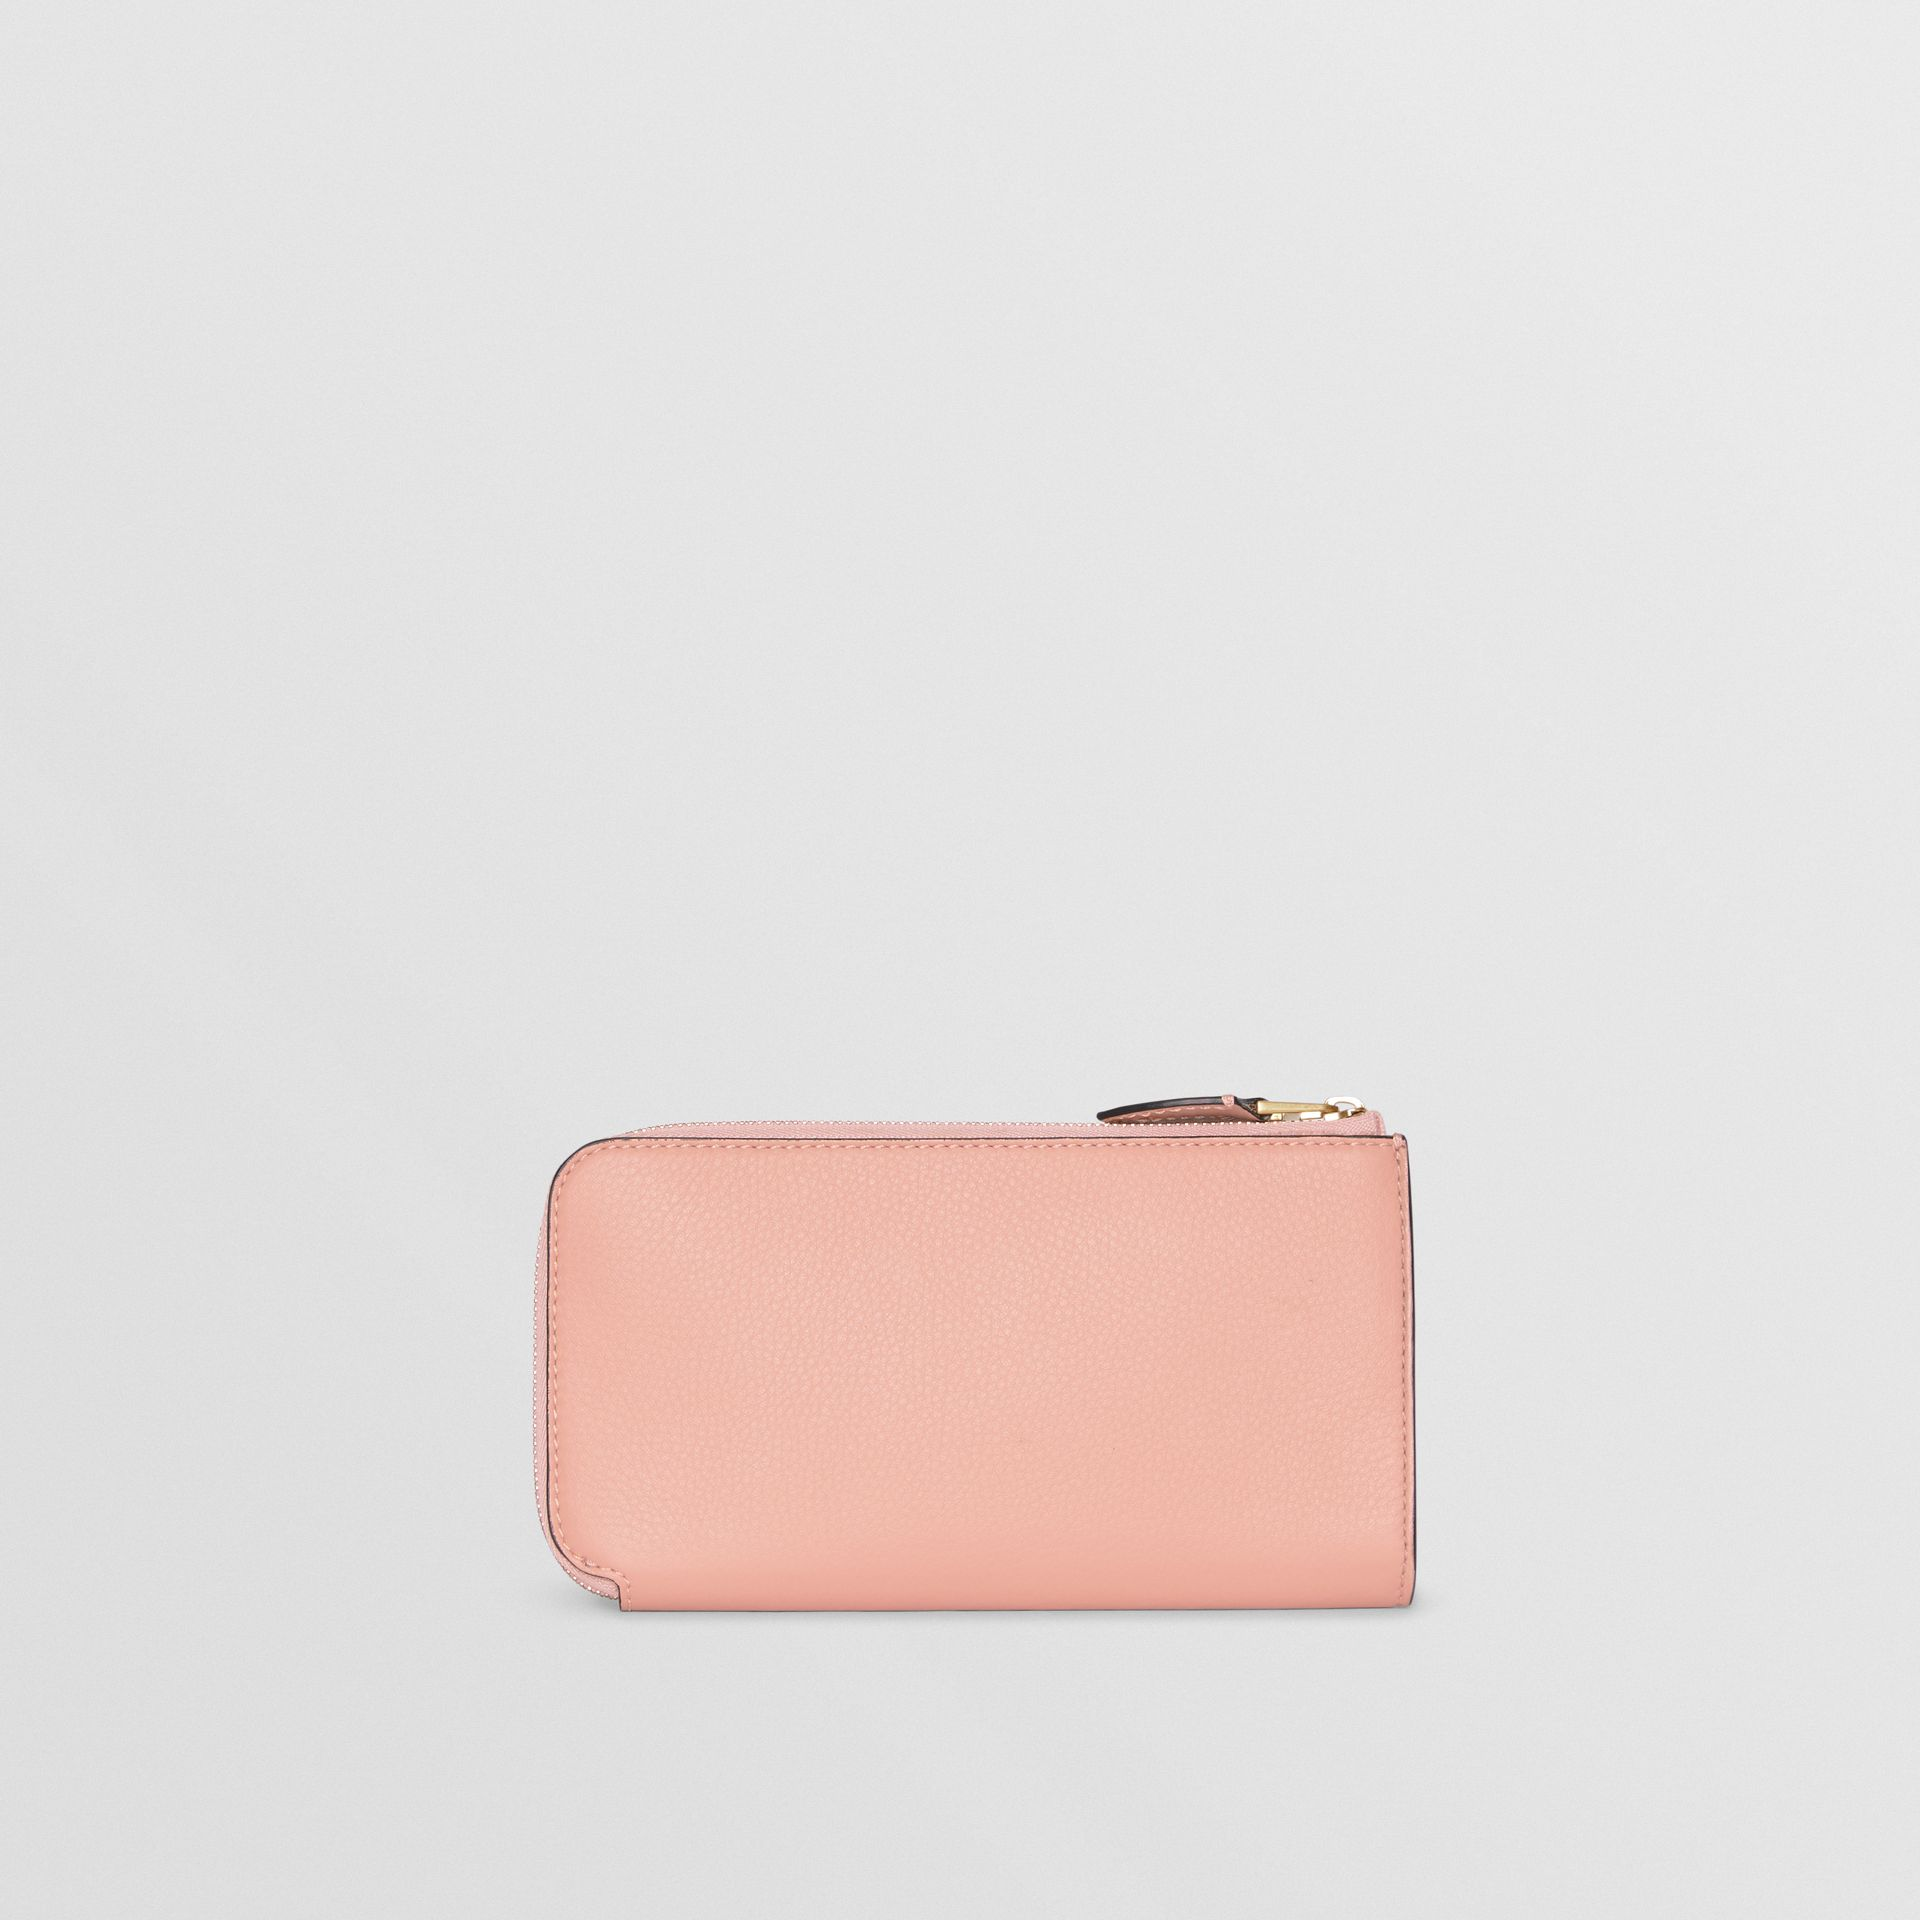 Two-tone Leather Ziparound Wallet and Coin Case in Ash Rose - Women | Burberry - gallery image 6